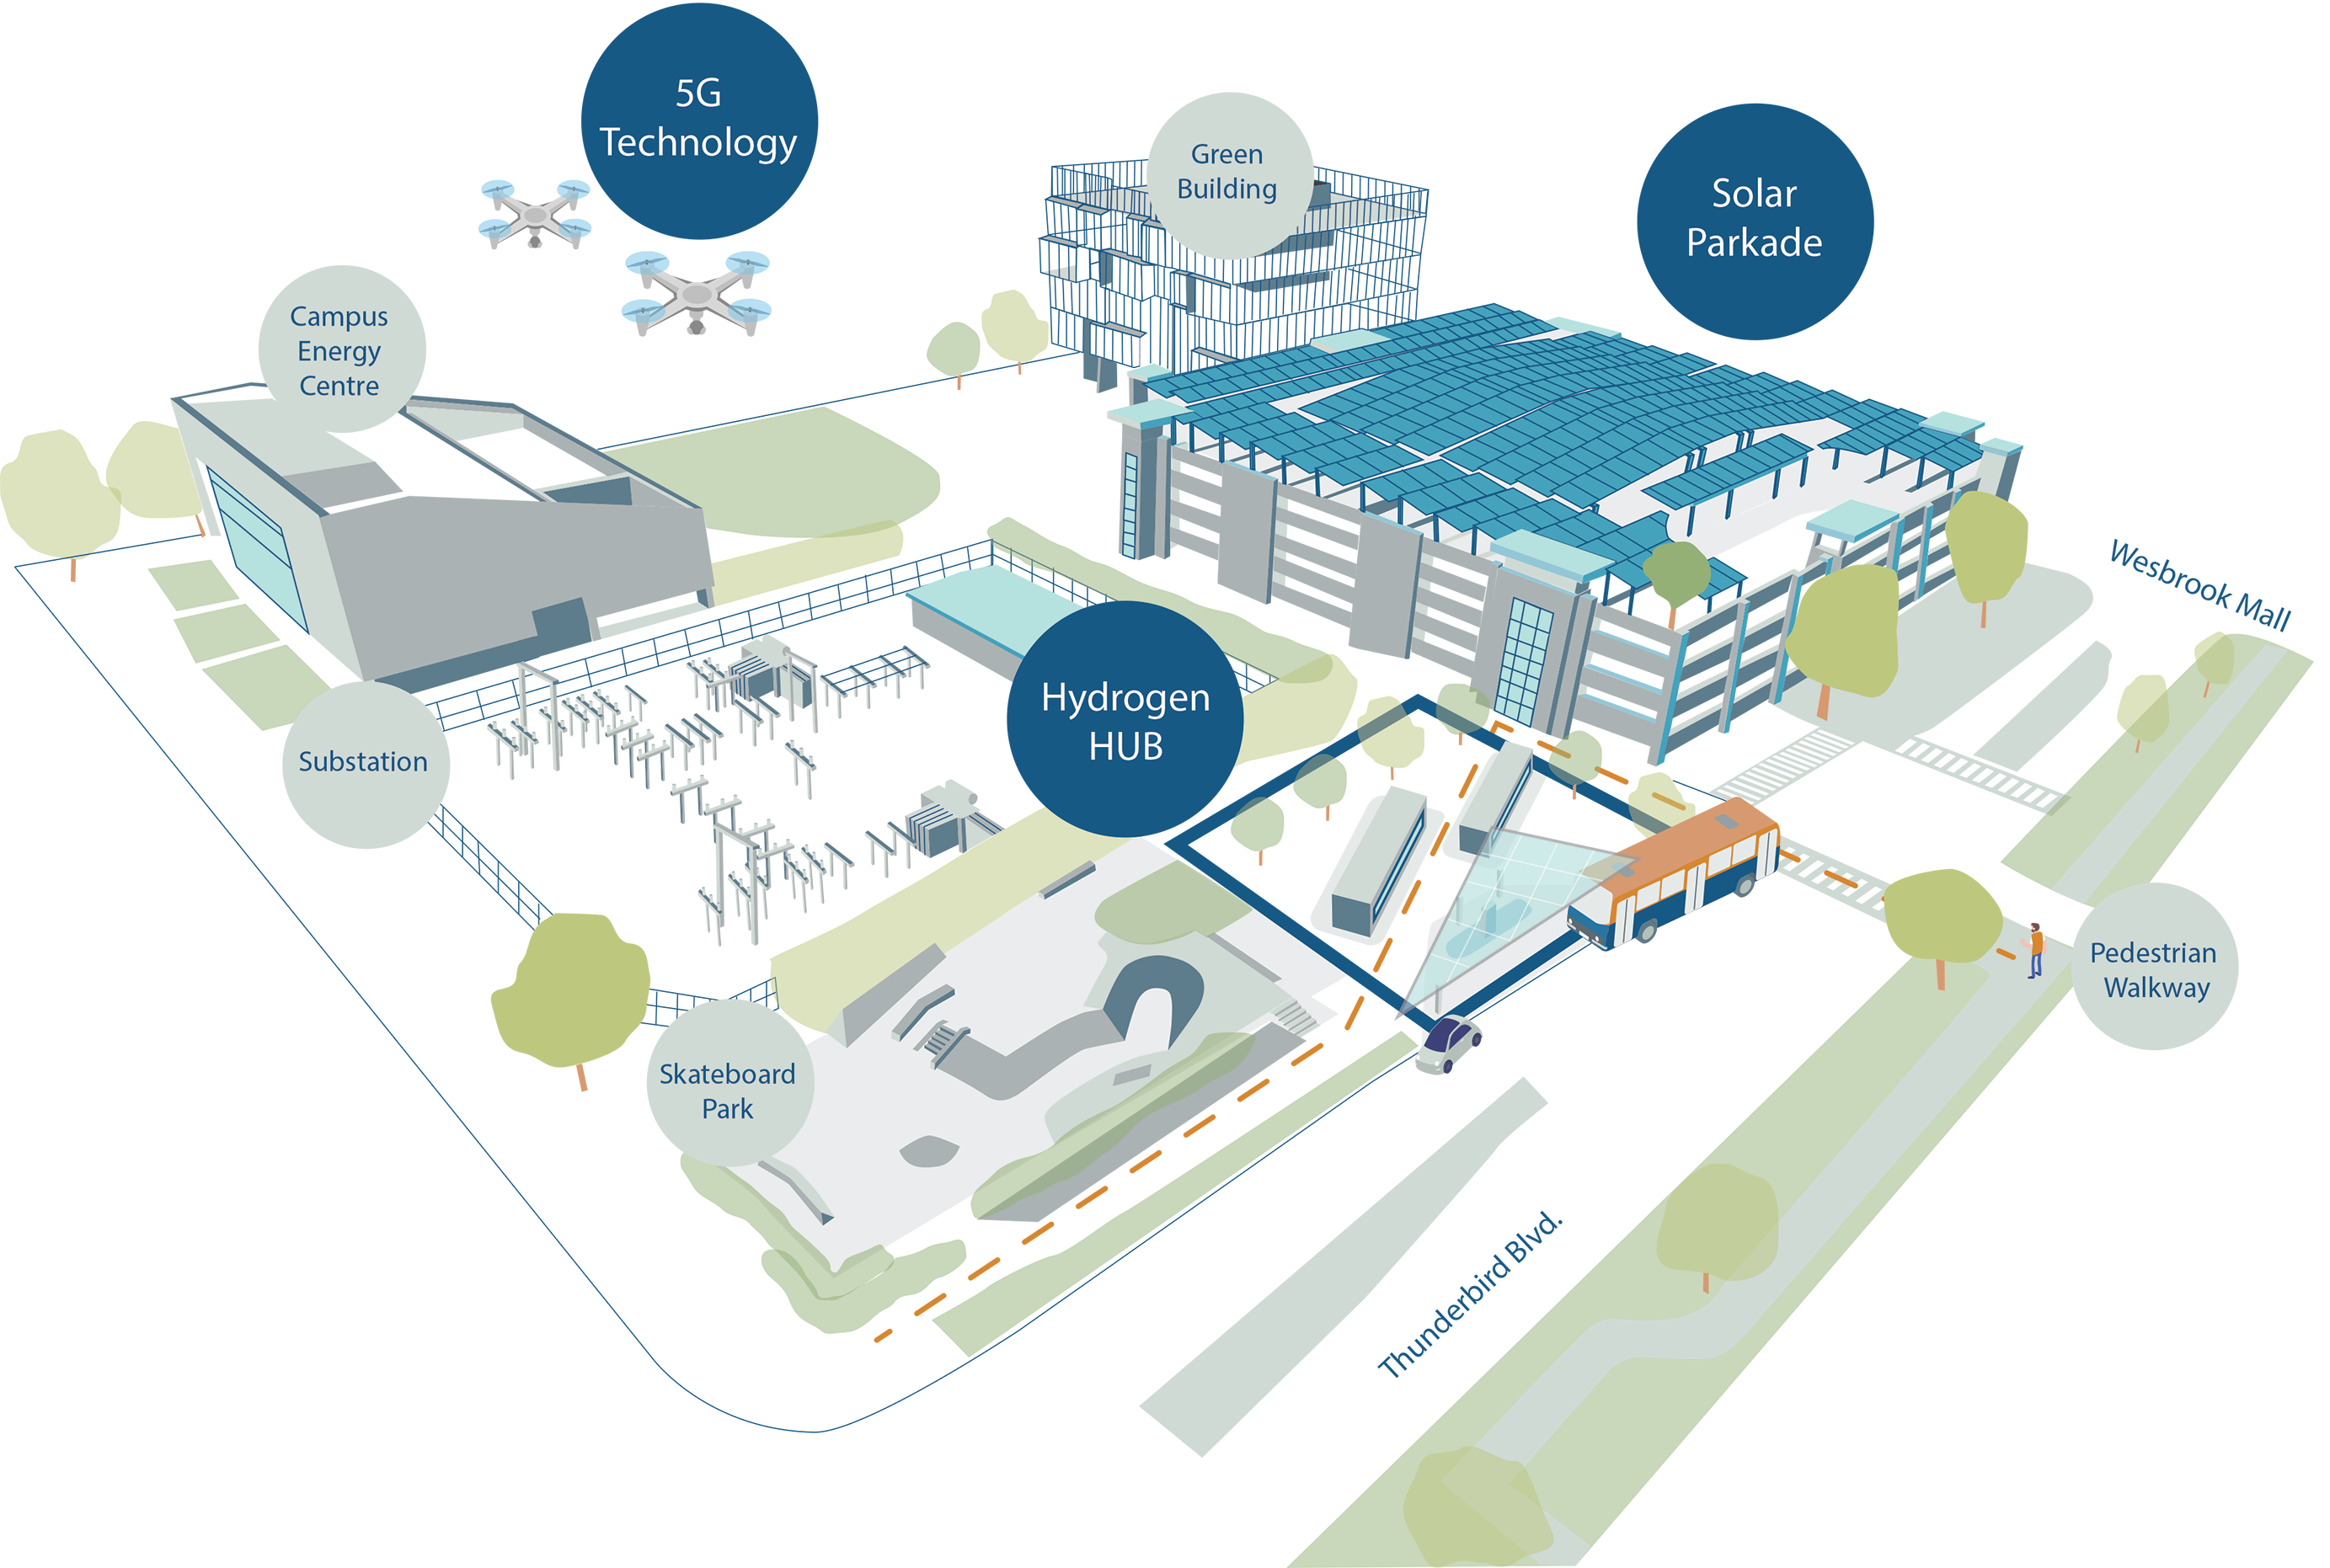 The hub will include an electric vehicle charging station, a hydrogen refuelling station and solar arrays.